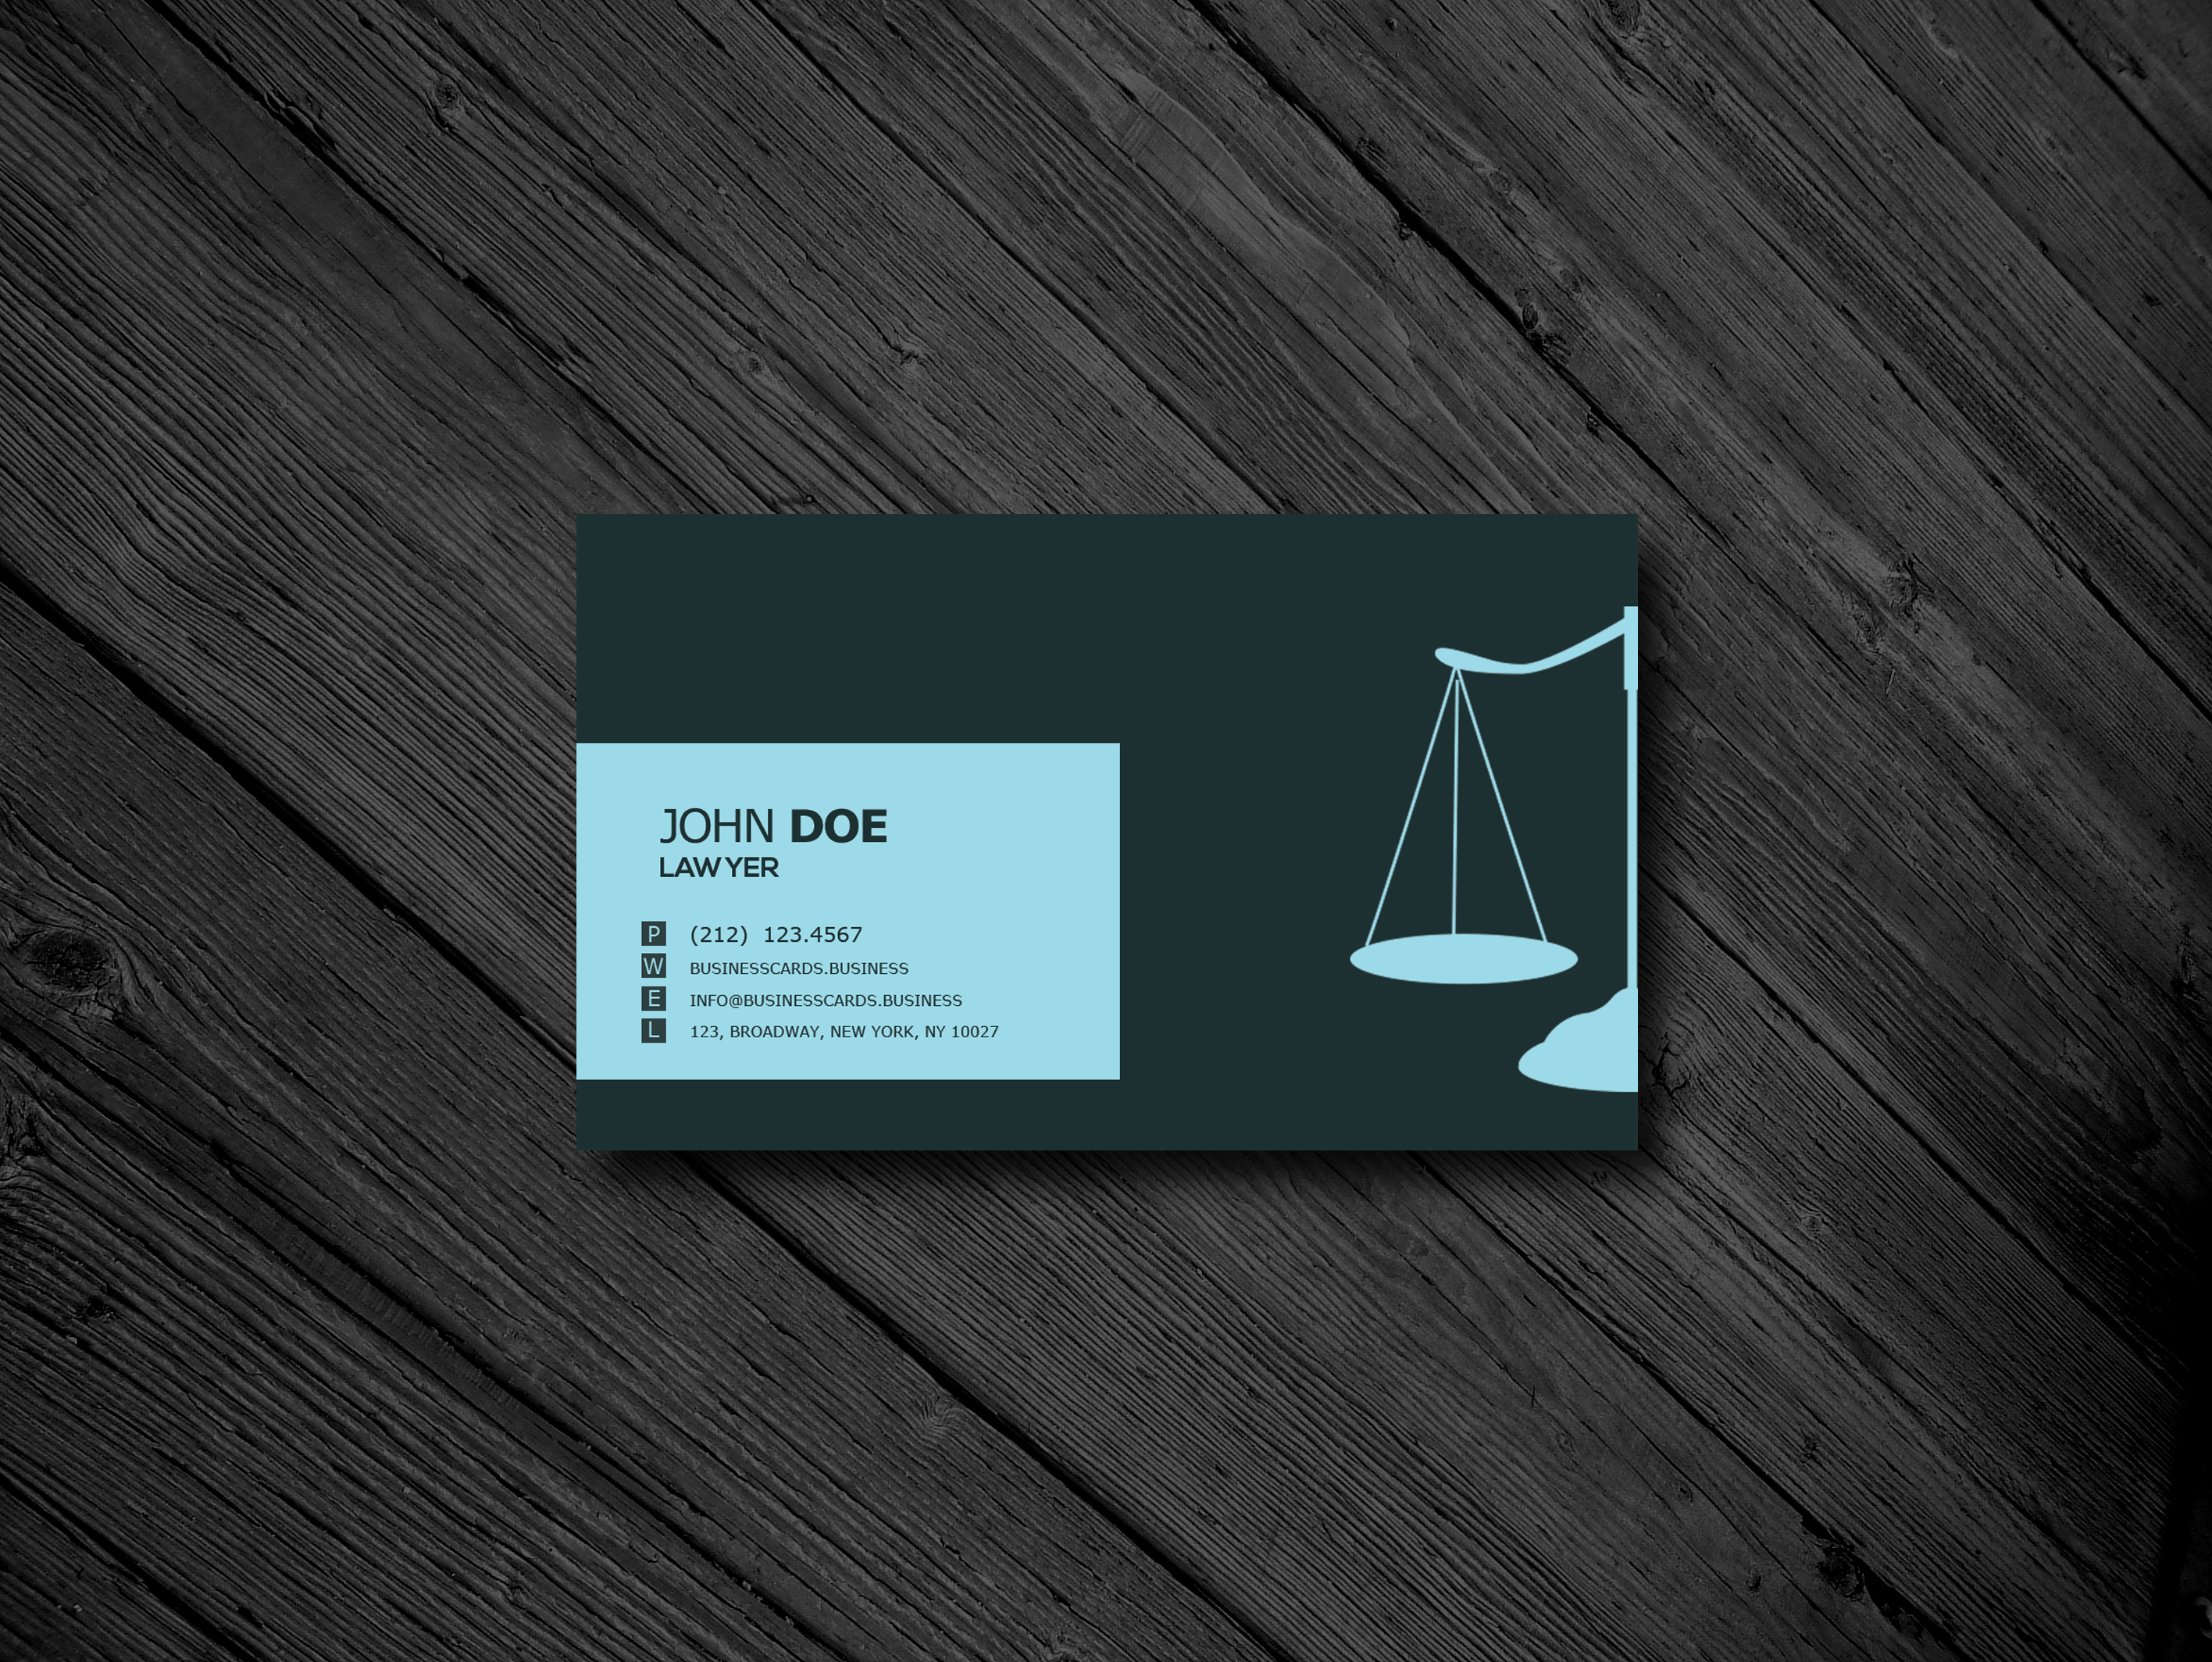 Free business card templates business cards templates free lawyer business card psd template flashek Images